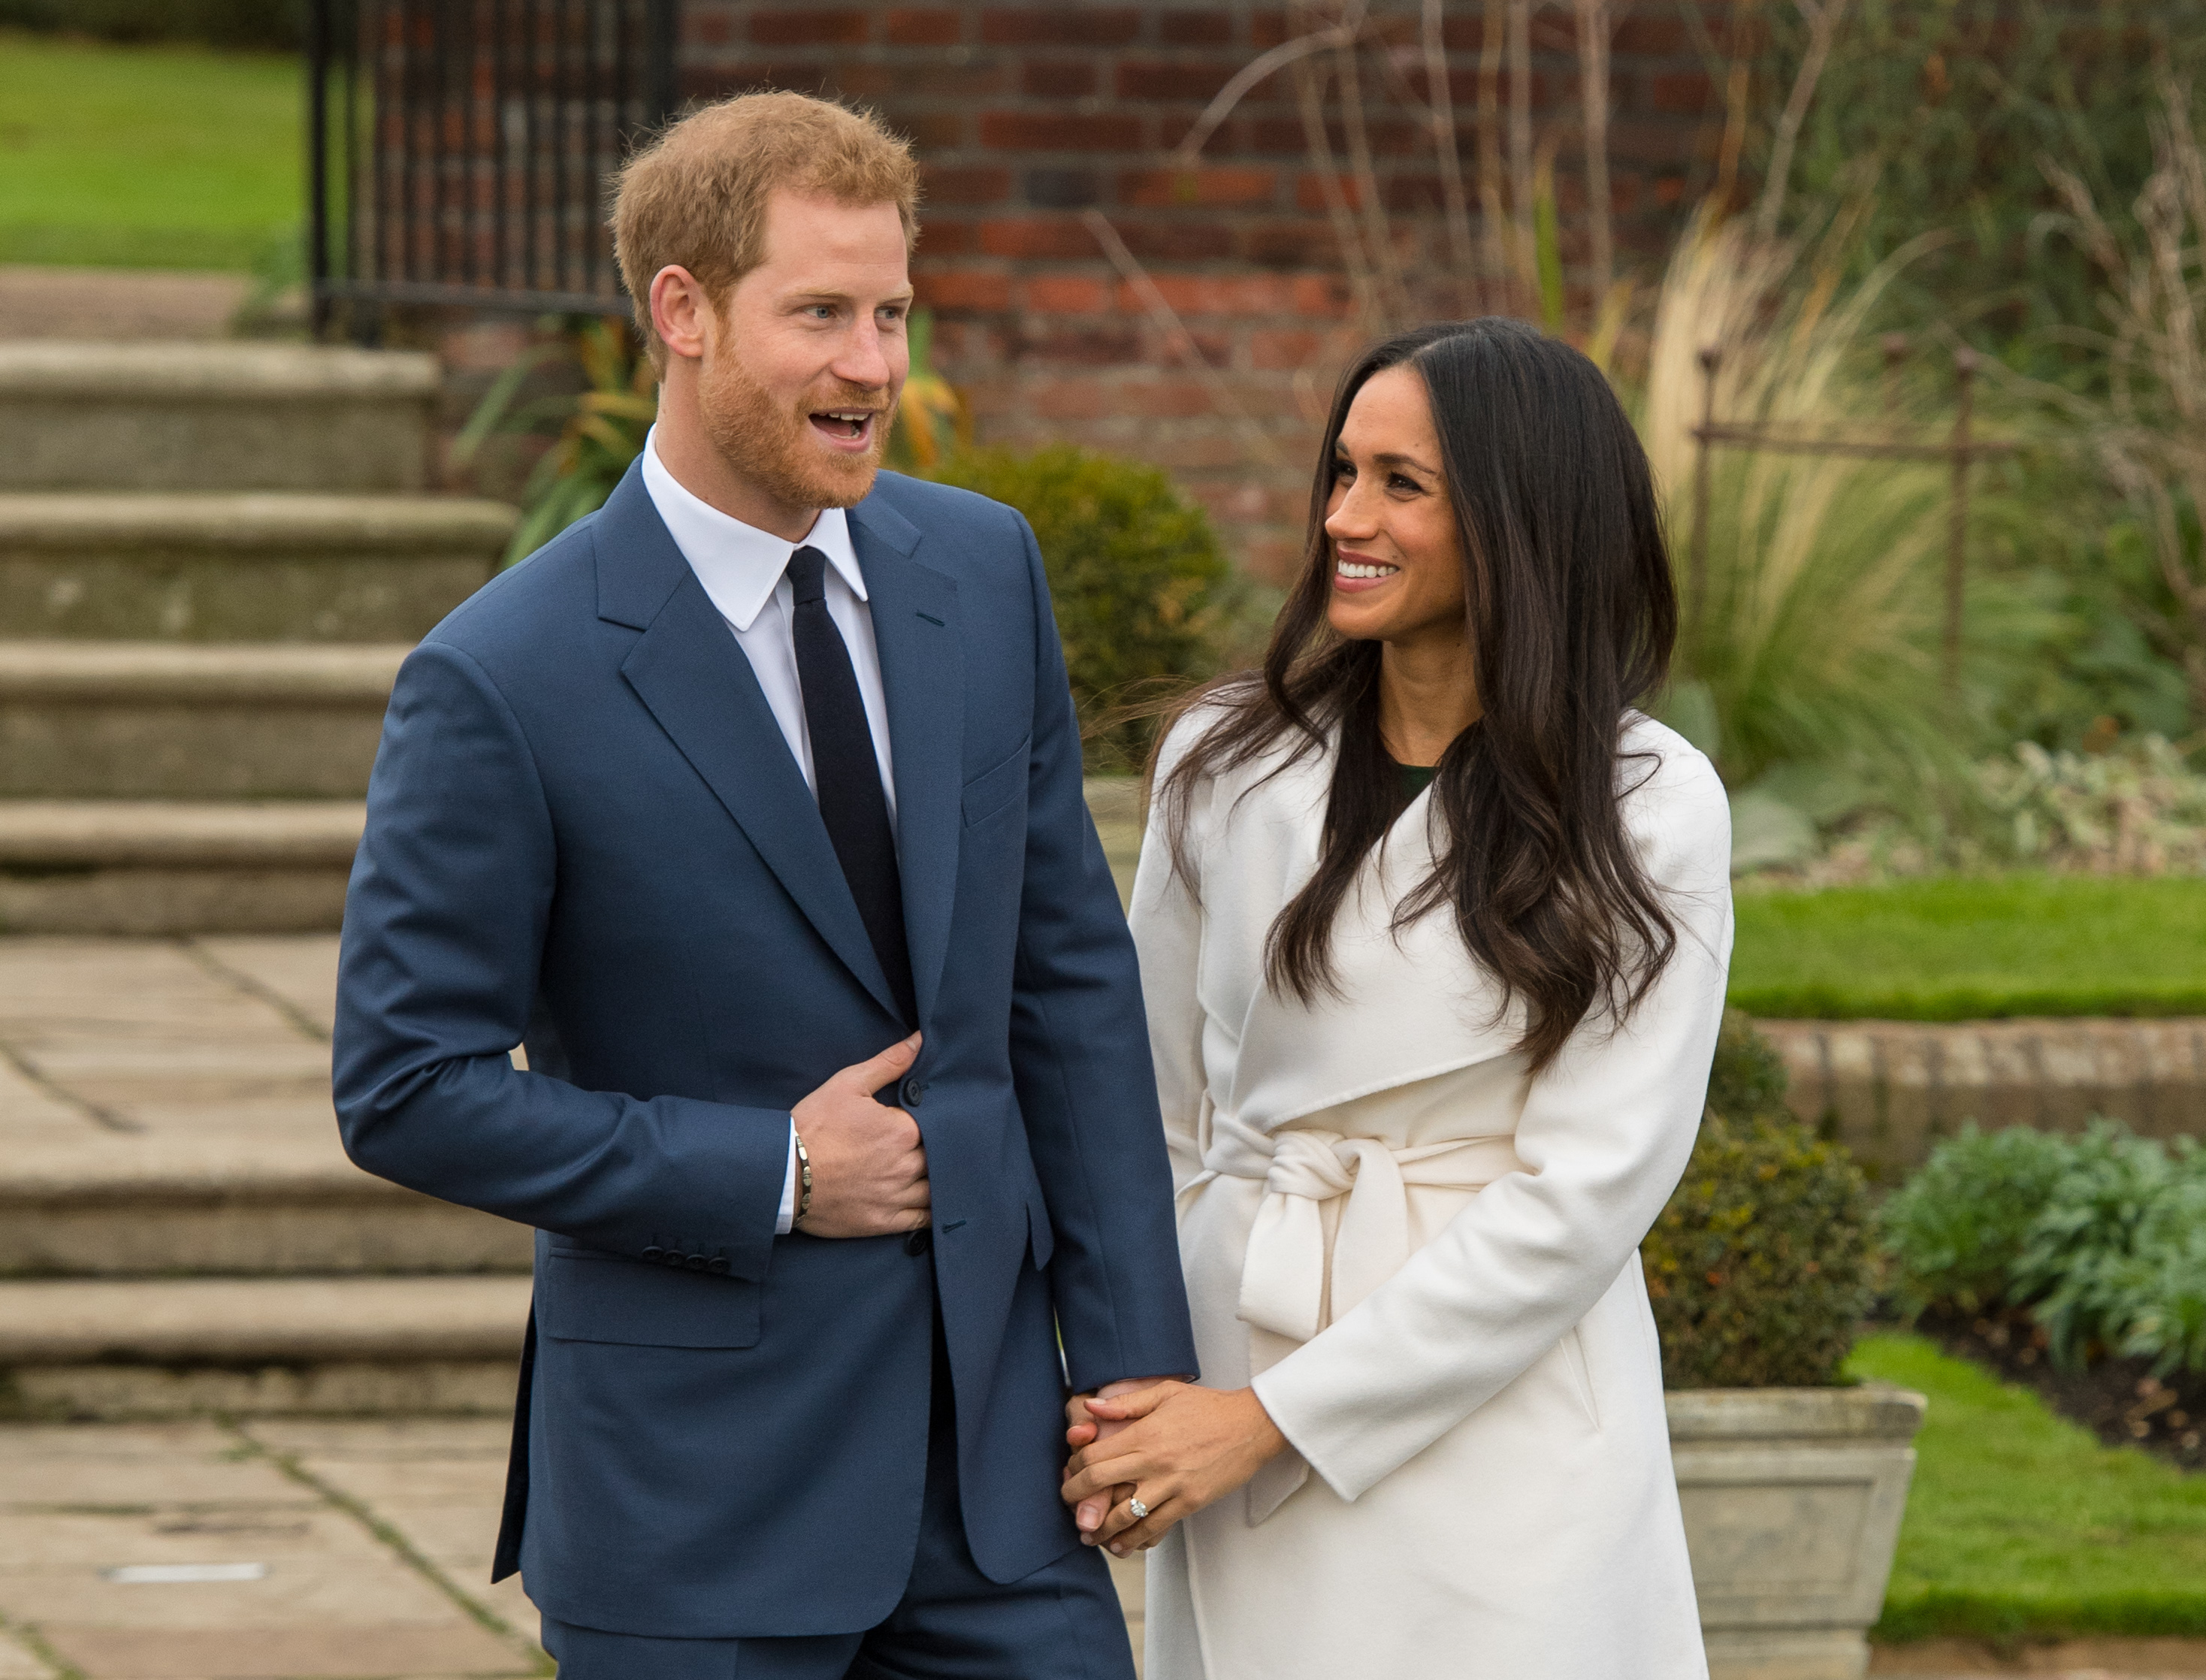 Meghan Markle plans to become a United Kingdom citizen